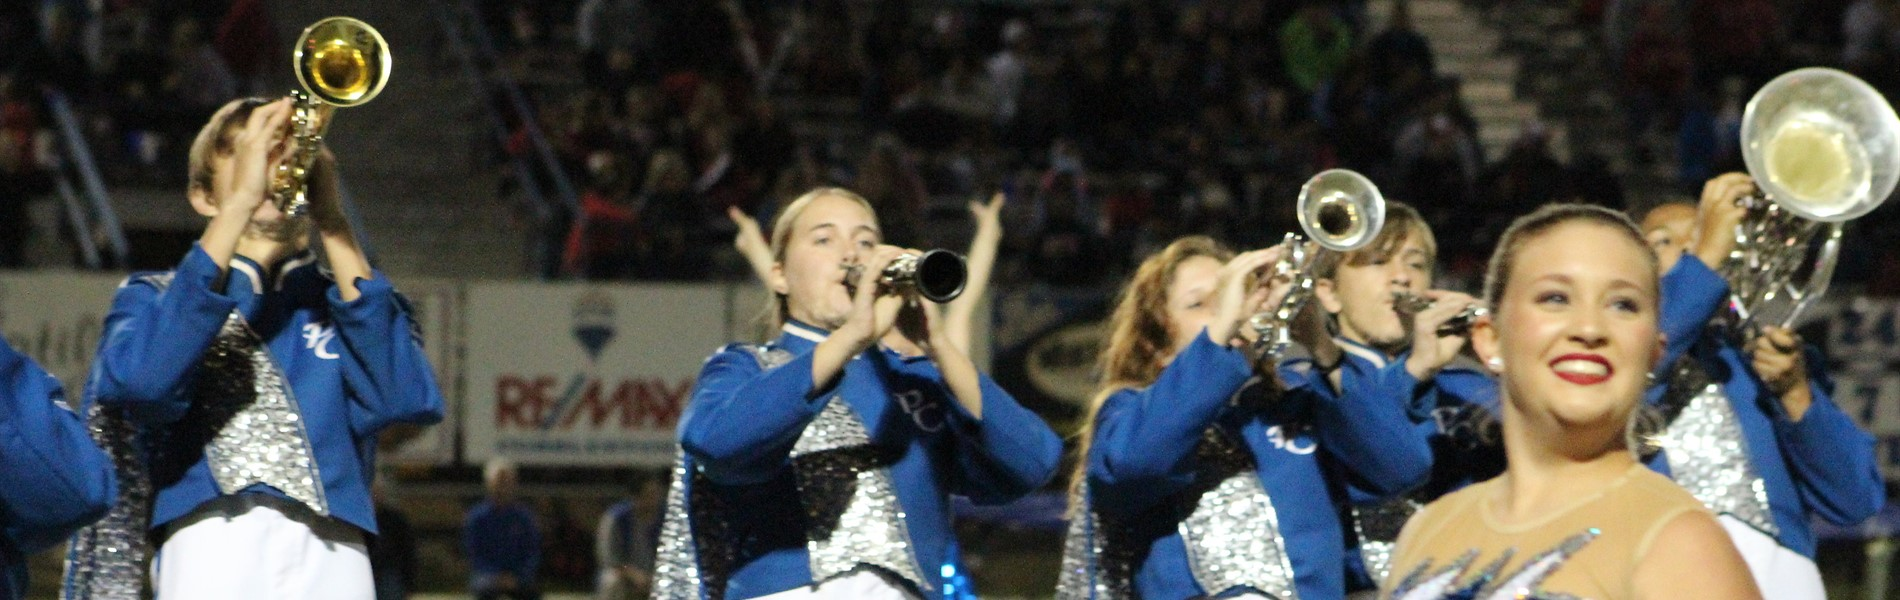 Band members performing during football half time show